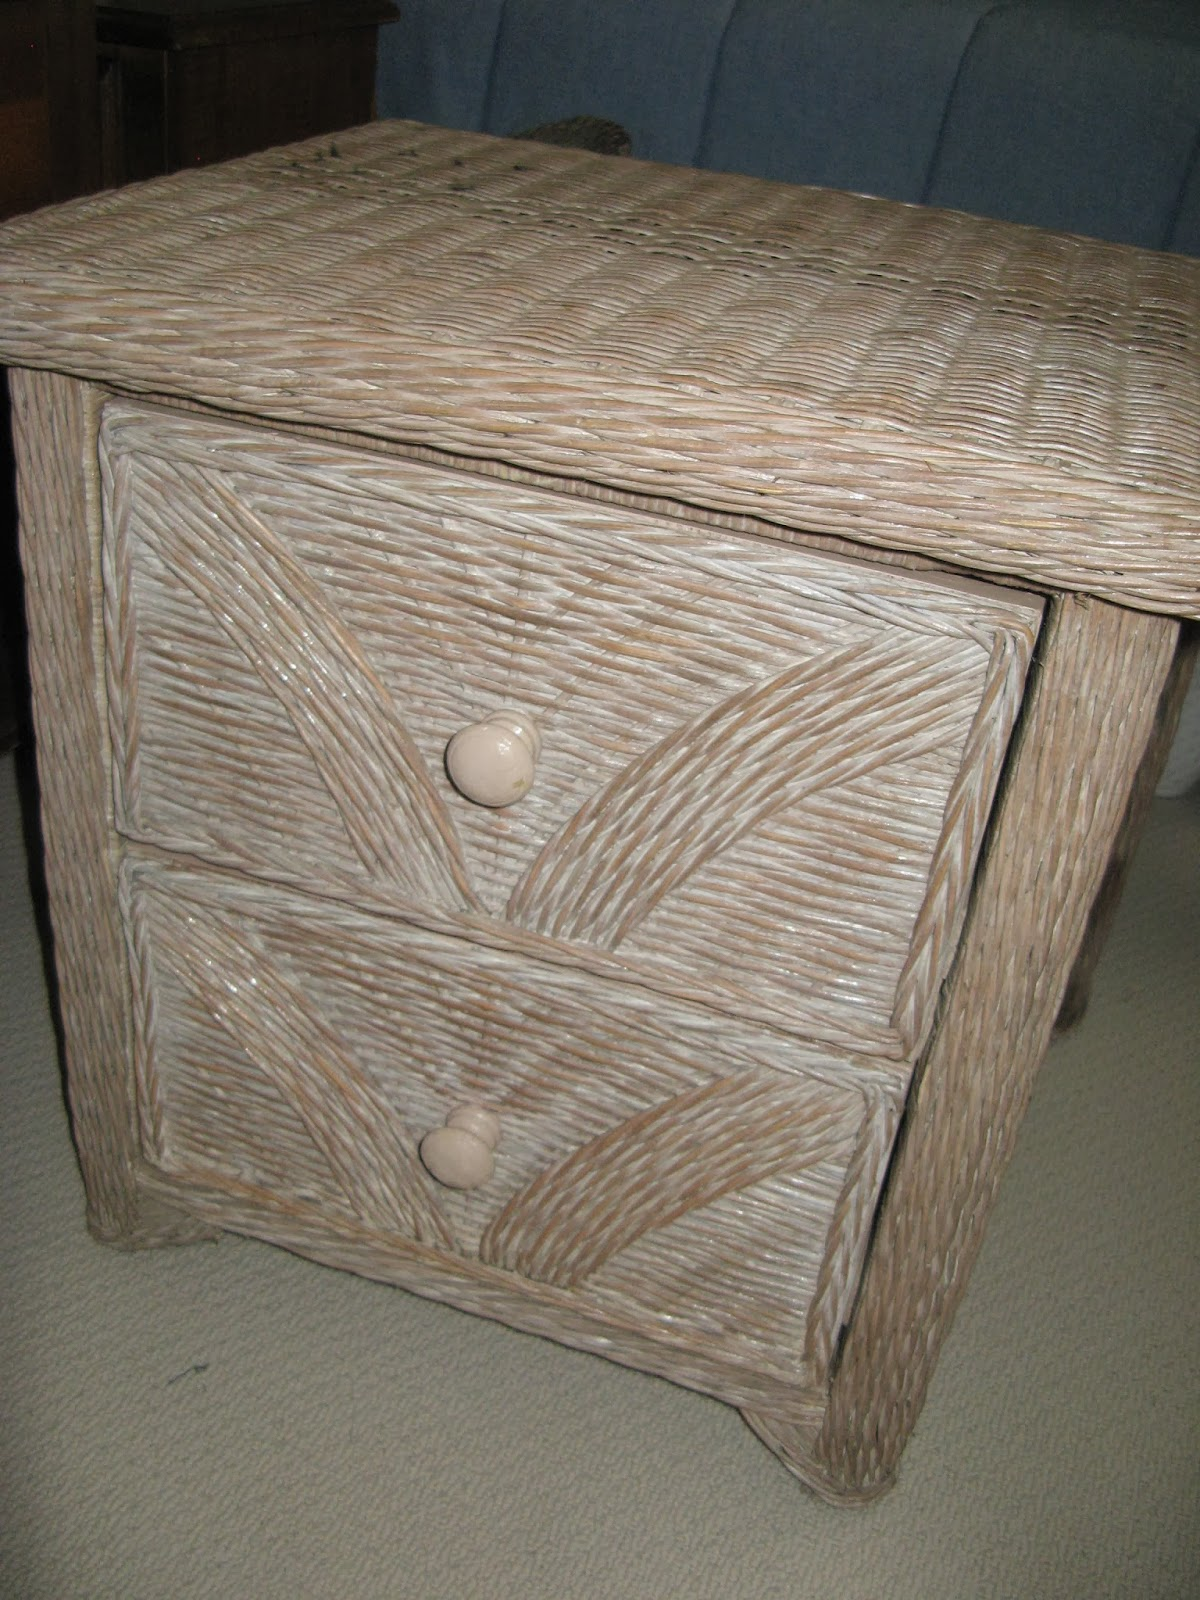 Wicker Nightstand - Before Photo